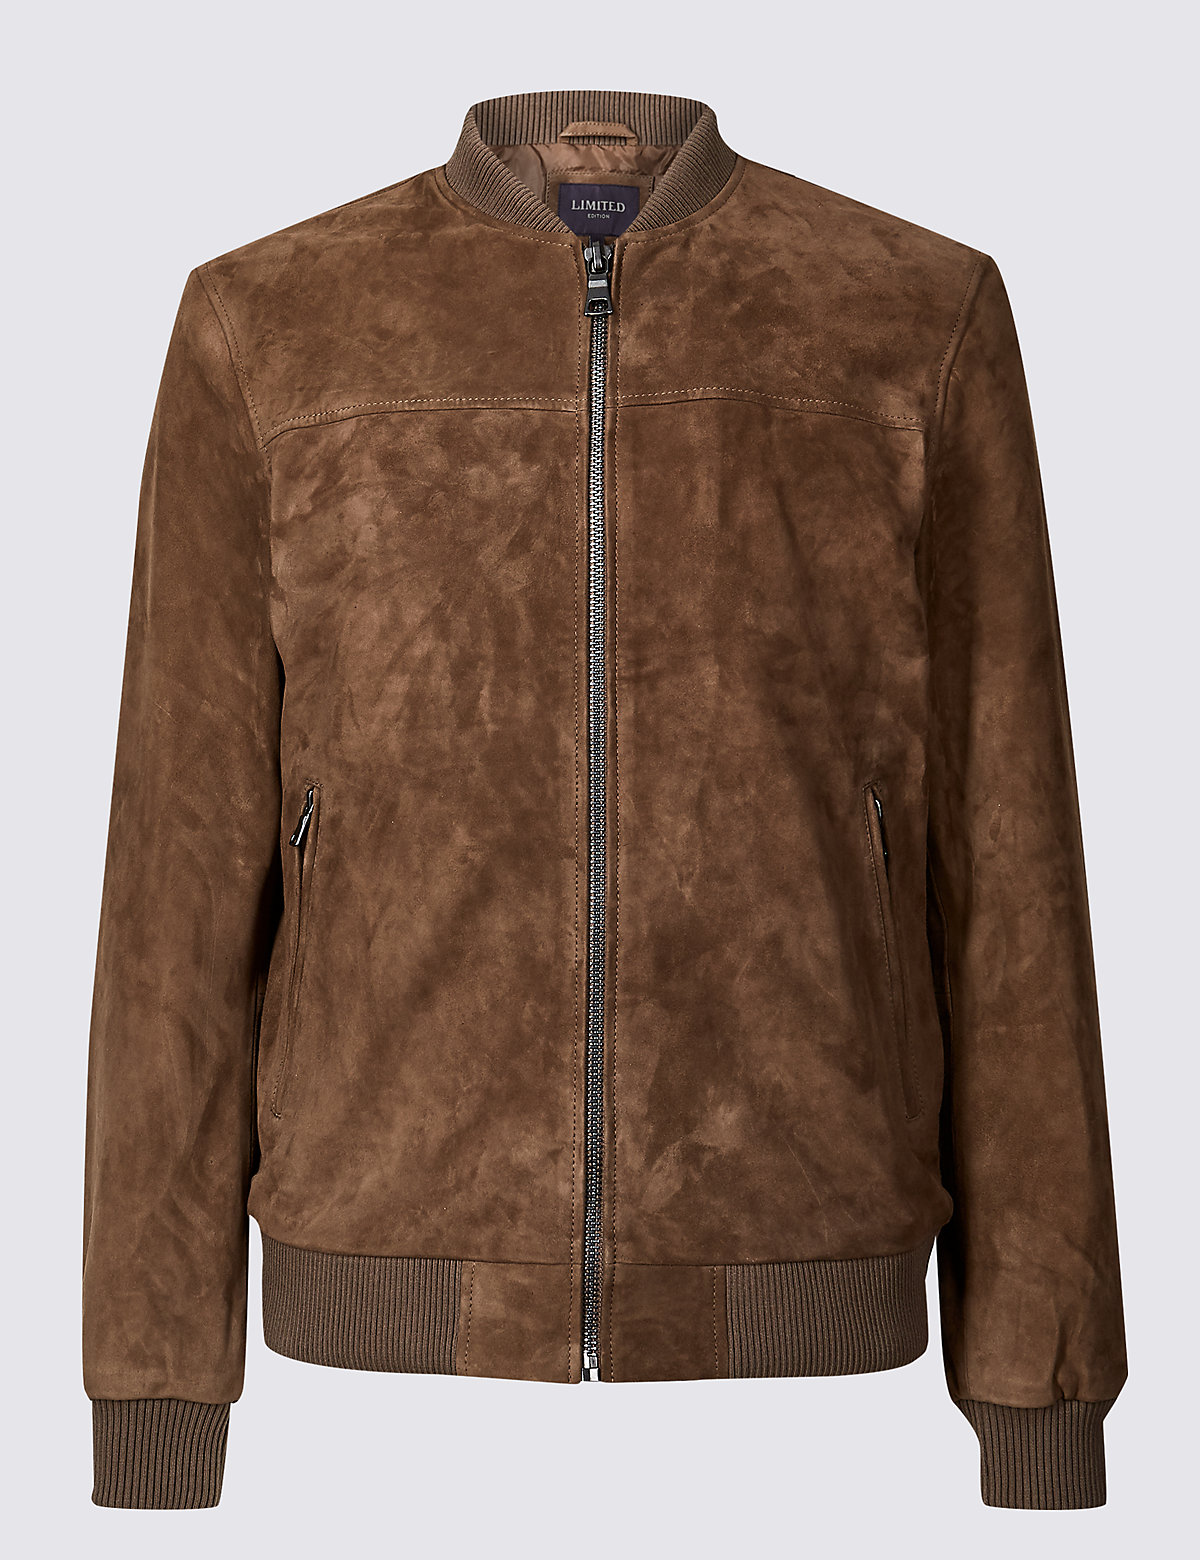 Marks & Spencer Dark Taupe Suede Baseball Jacket